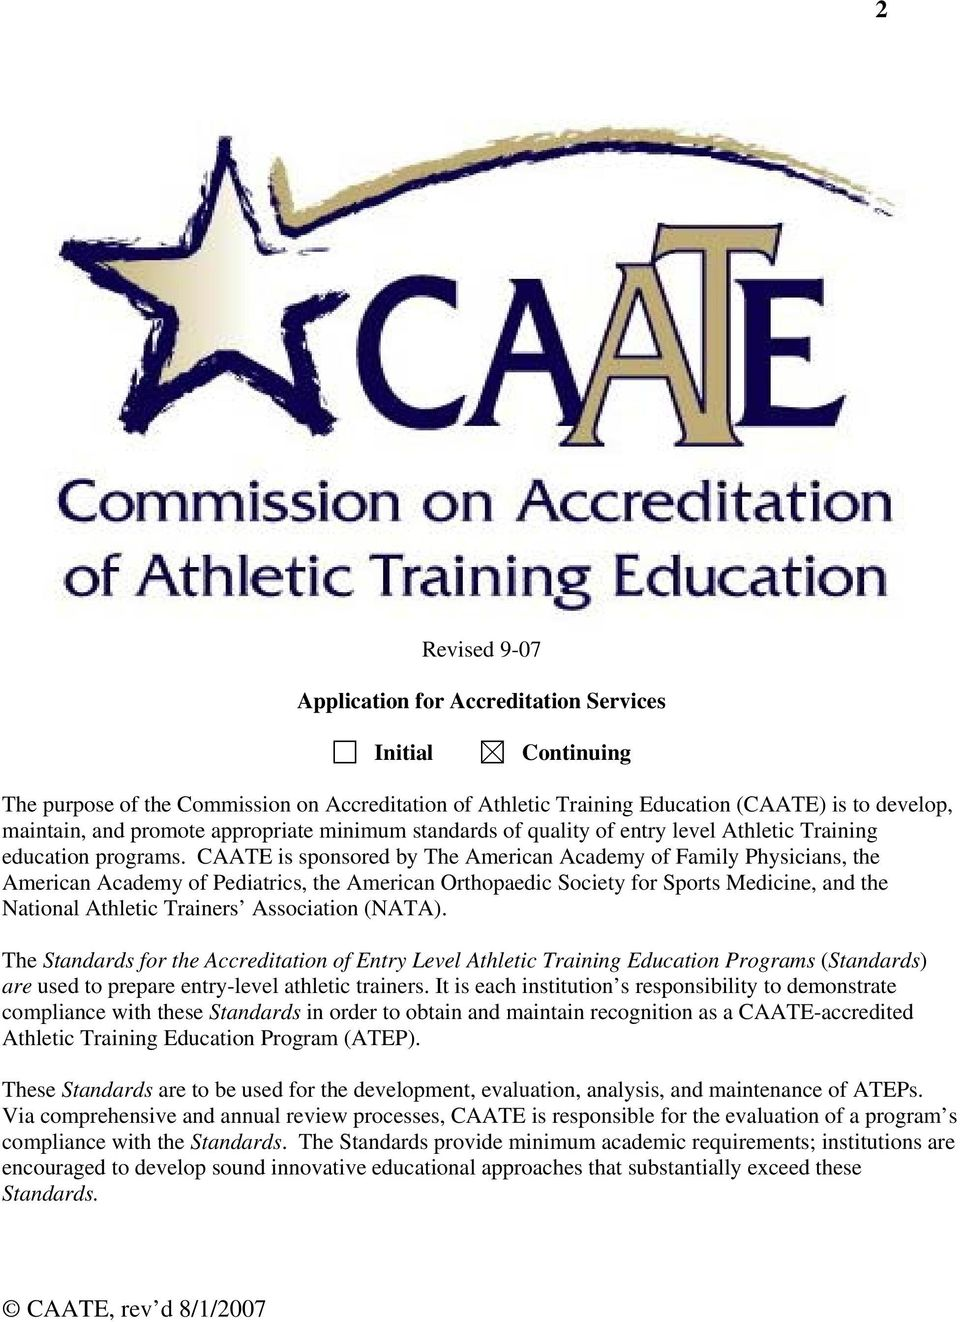 CAATE is sponsored by The American Academy of Family Physicians, the American Academy of Pediatrics, the American Orthopaedic Society for Sports Medicine, and the National Athletic Trainers